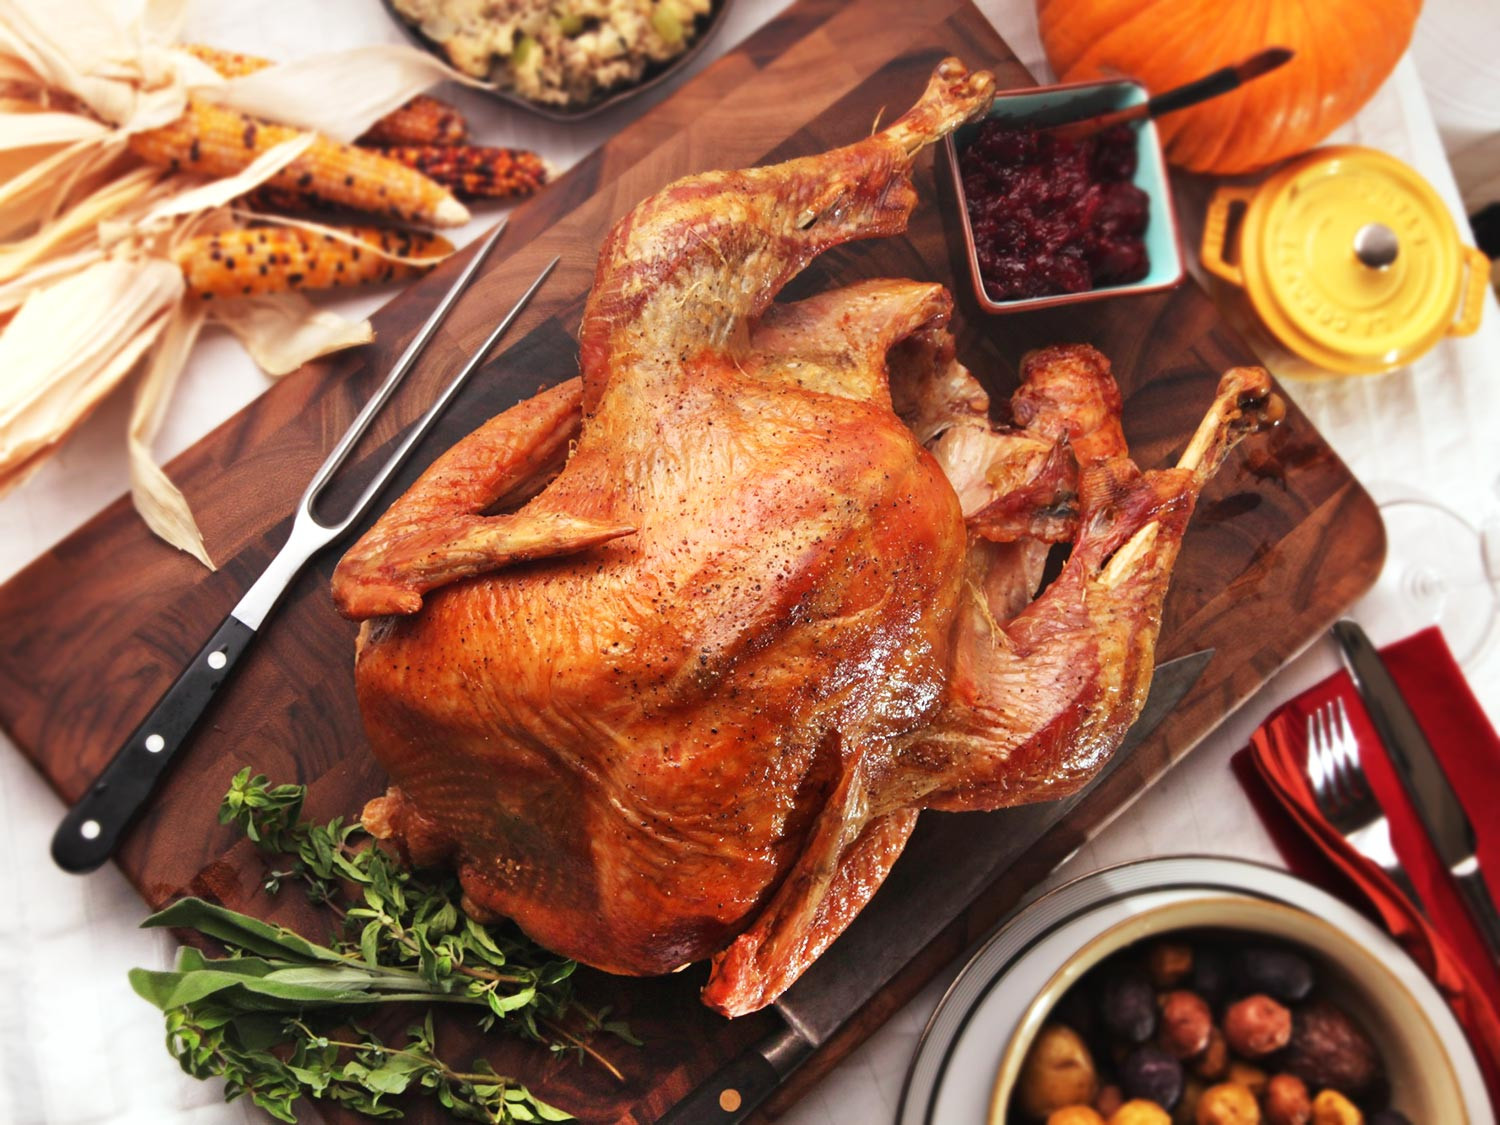 No Turkey Thanksgiving  The Food Lab Roasting Turkey Throw Out Your Roasting Pan